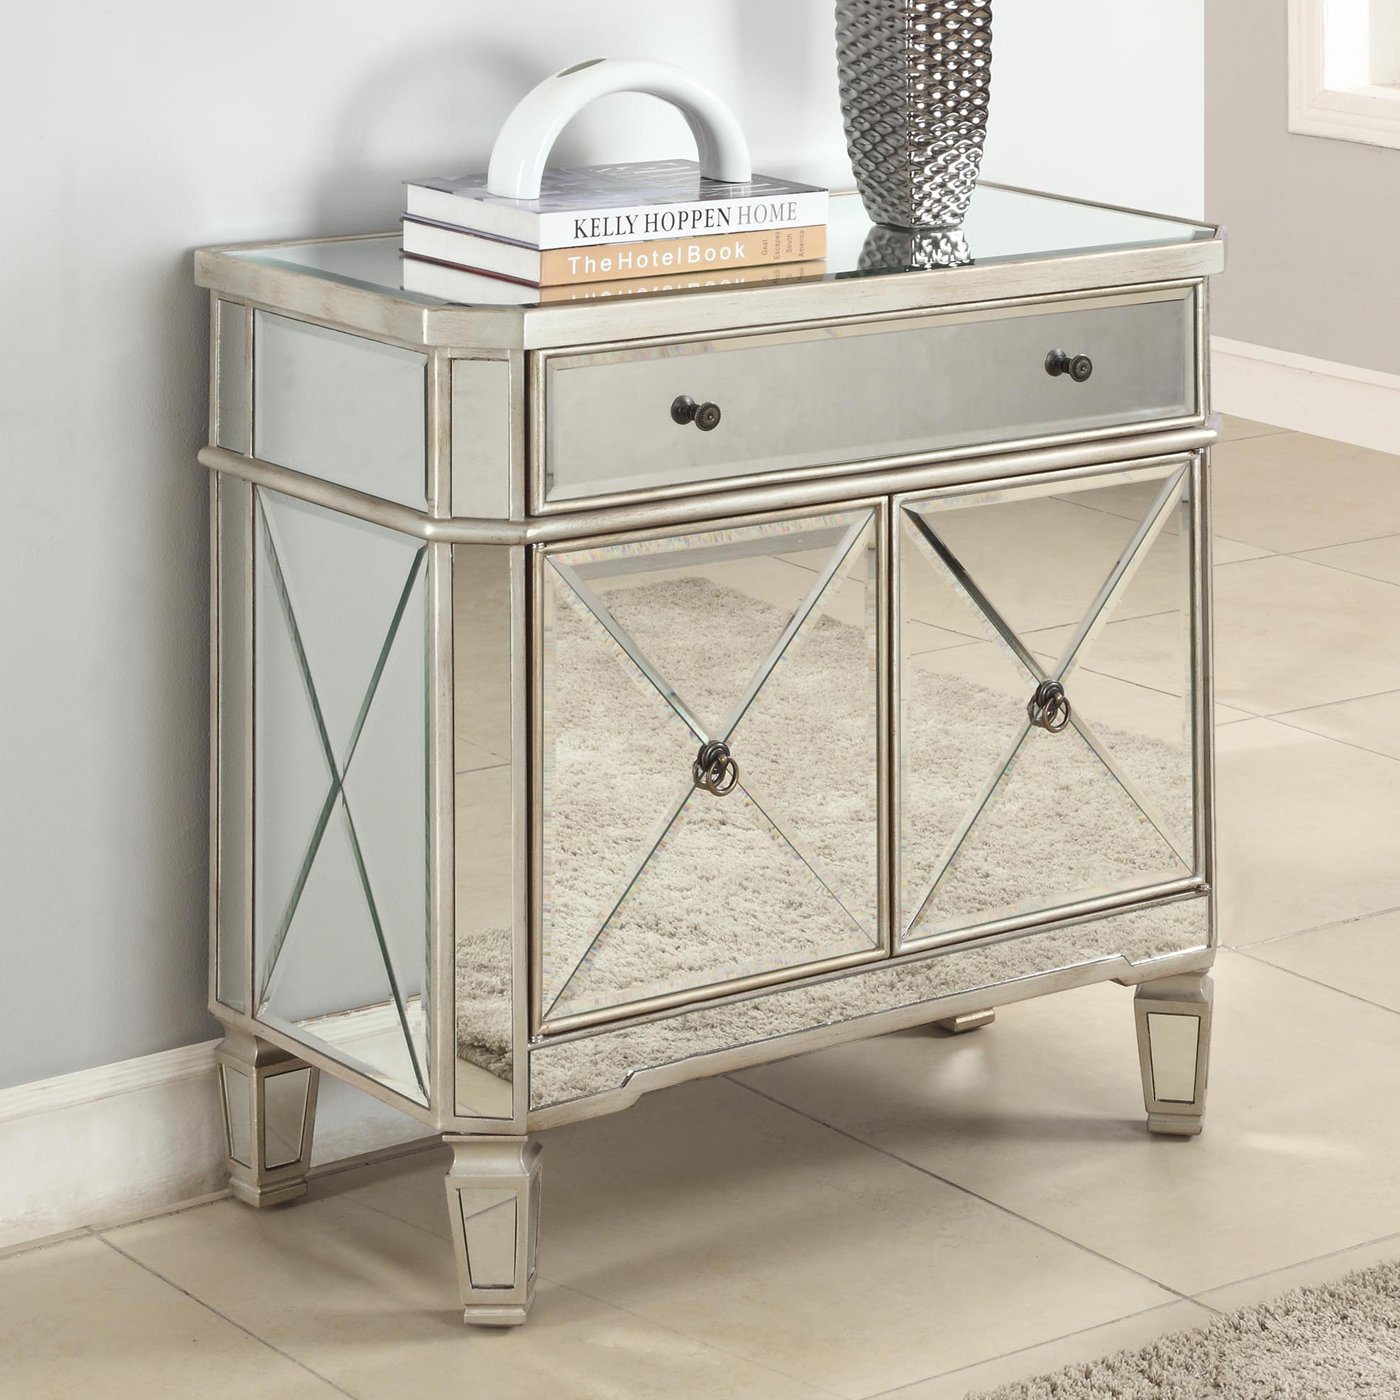 diy mirrored side table beblicanto designs ideas accent night piece faux marble coffee set console with shoe storage steel bedside tablecloth measurements nightstand lamps marine